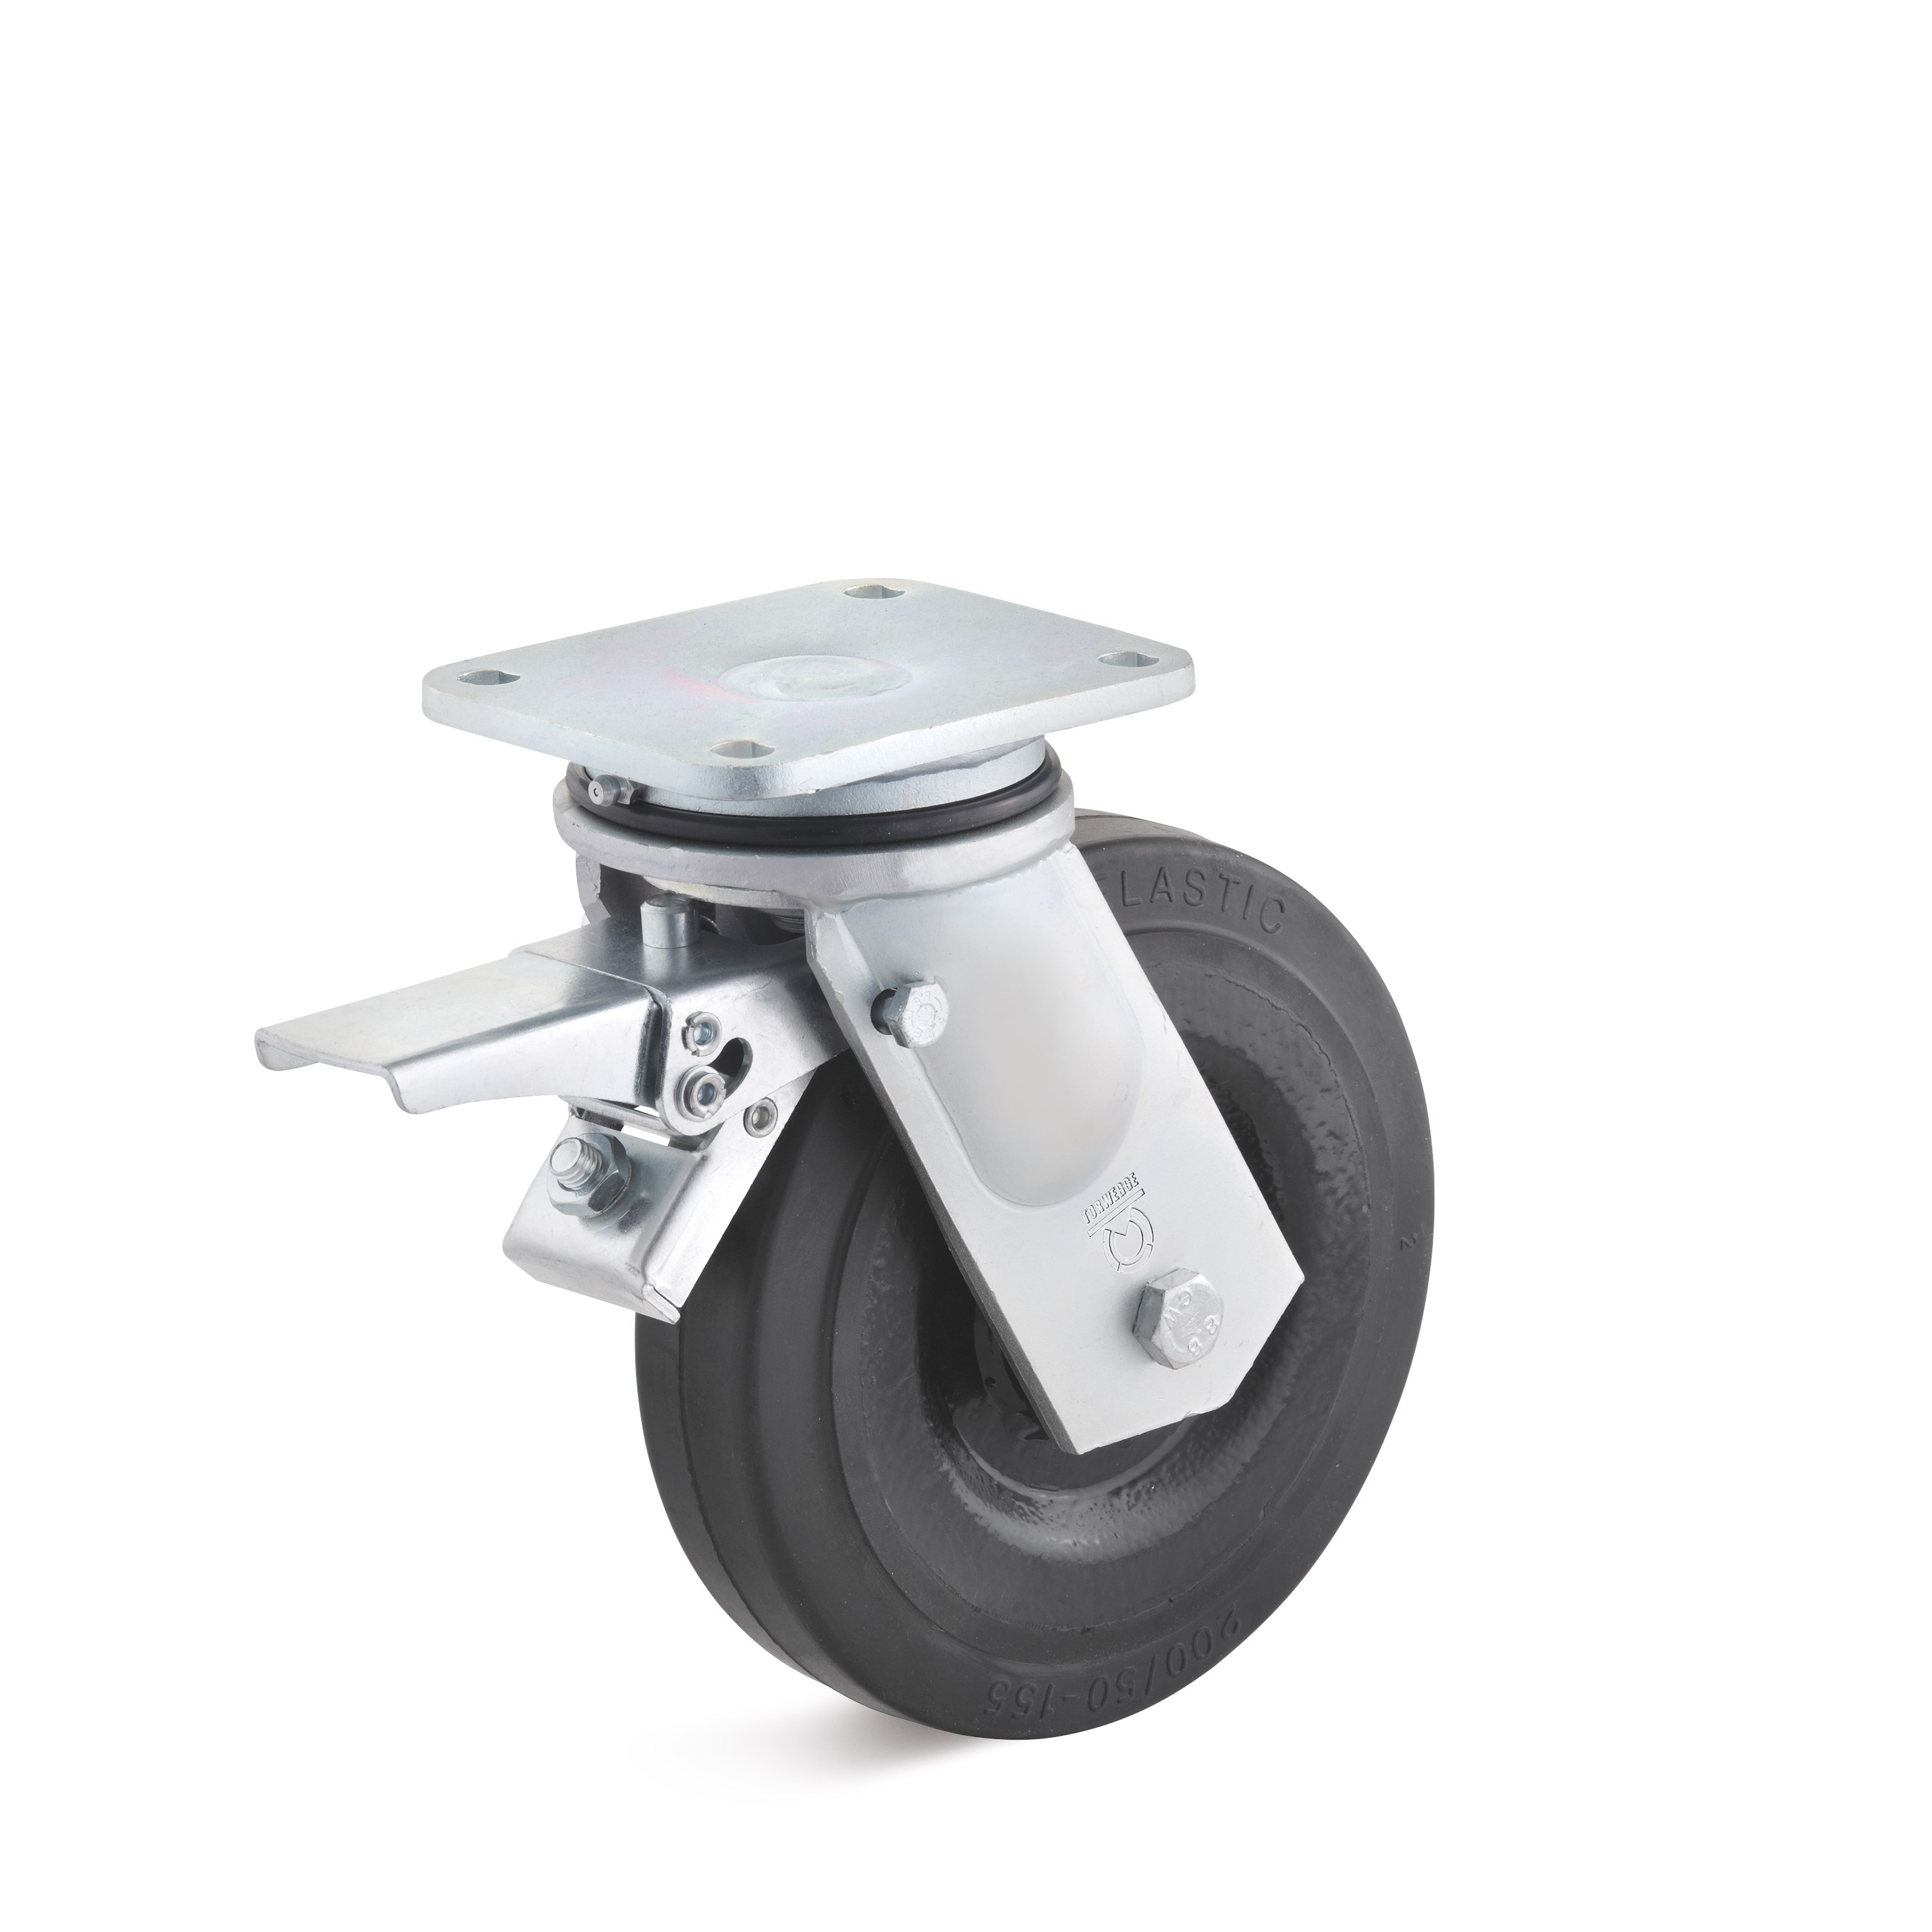 Heavy duty swivel castor with double stop and elastic solid rubber wheel